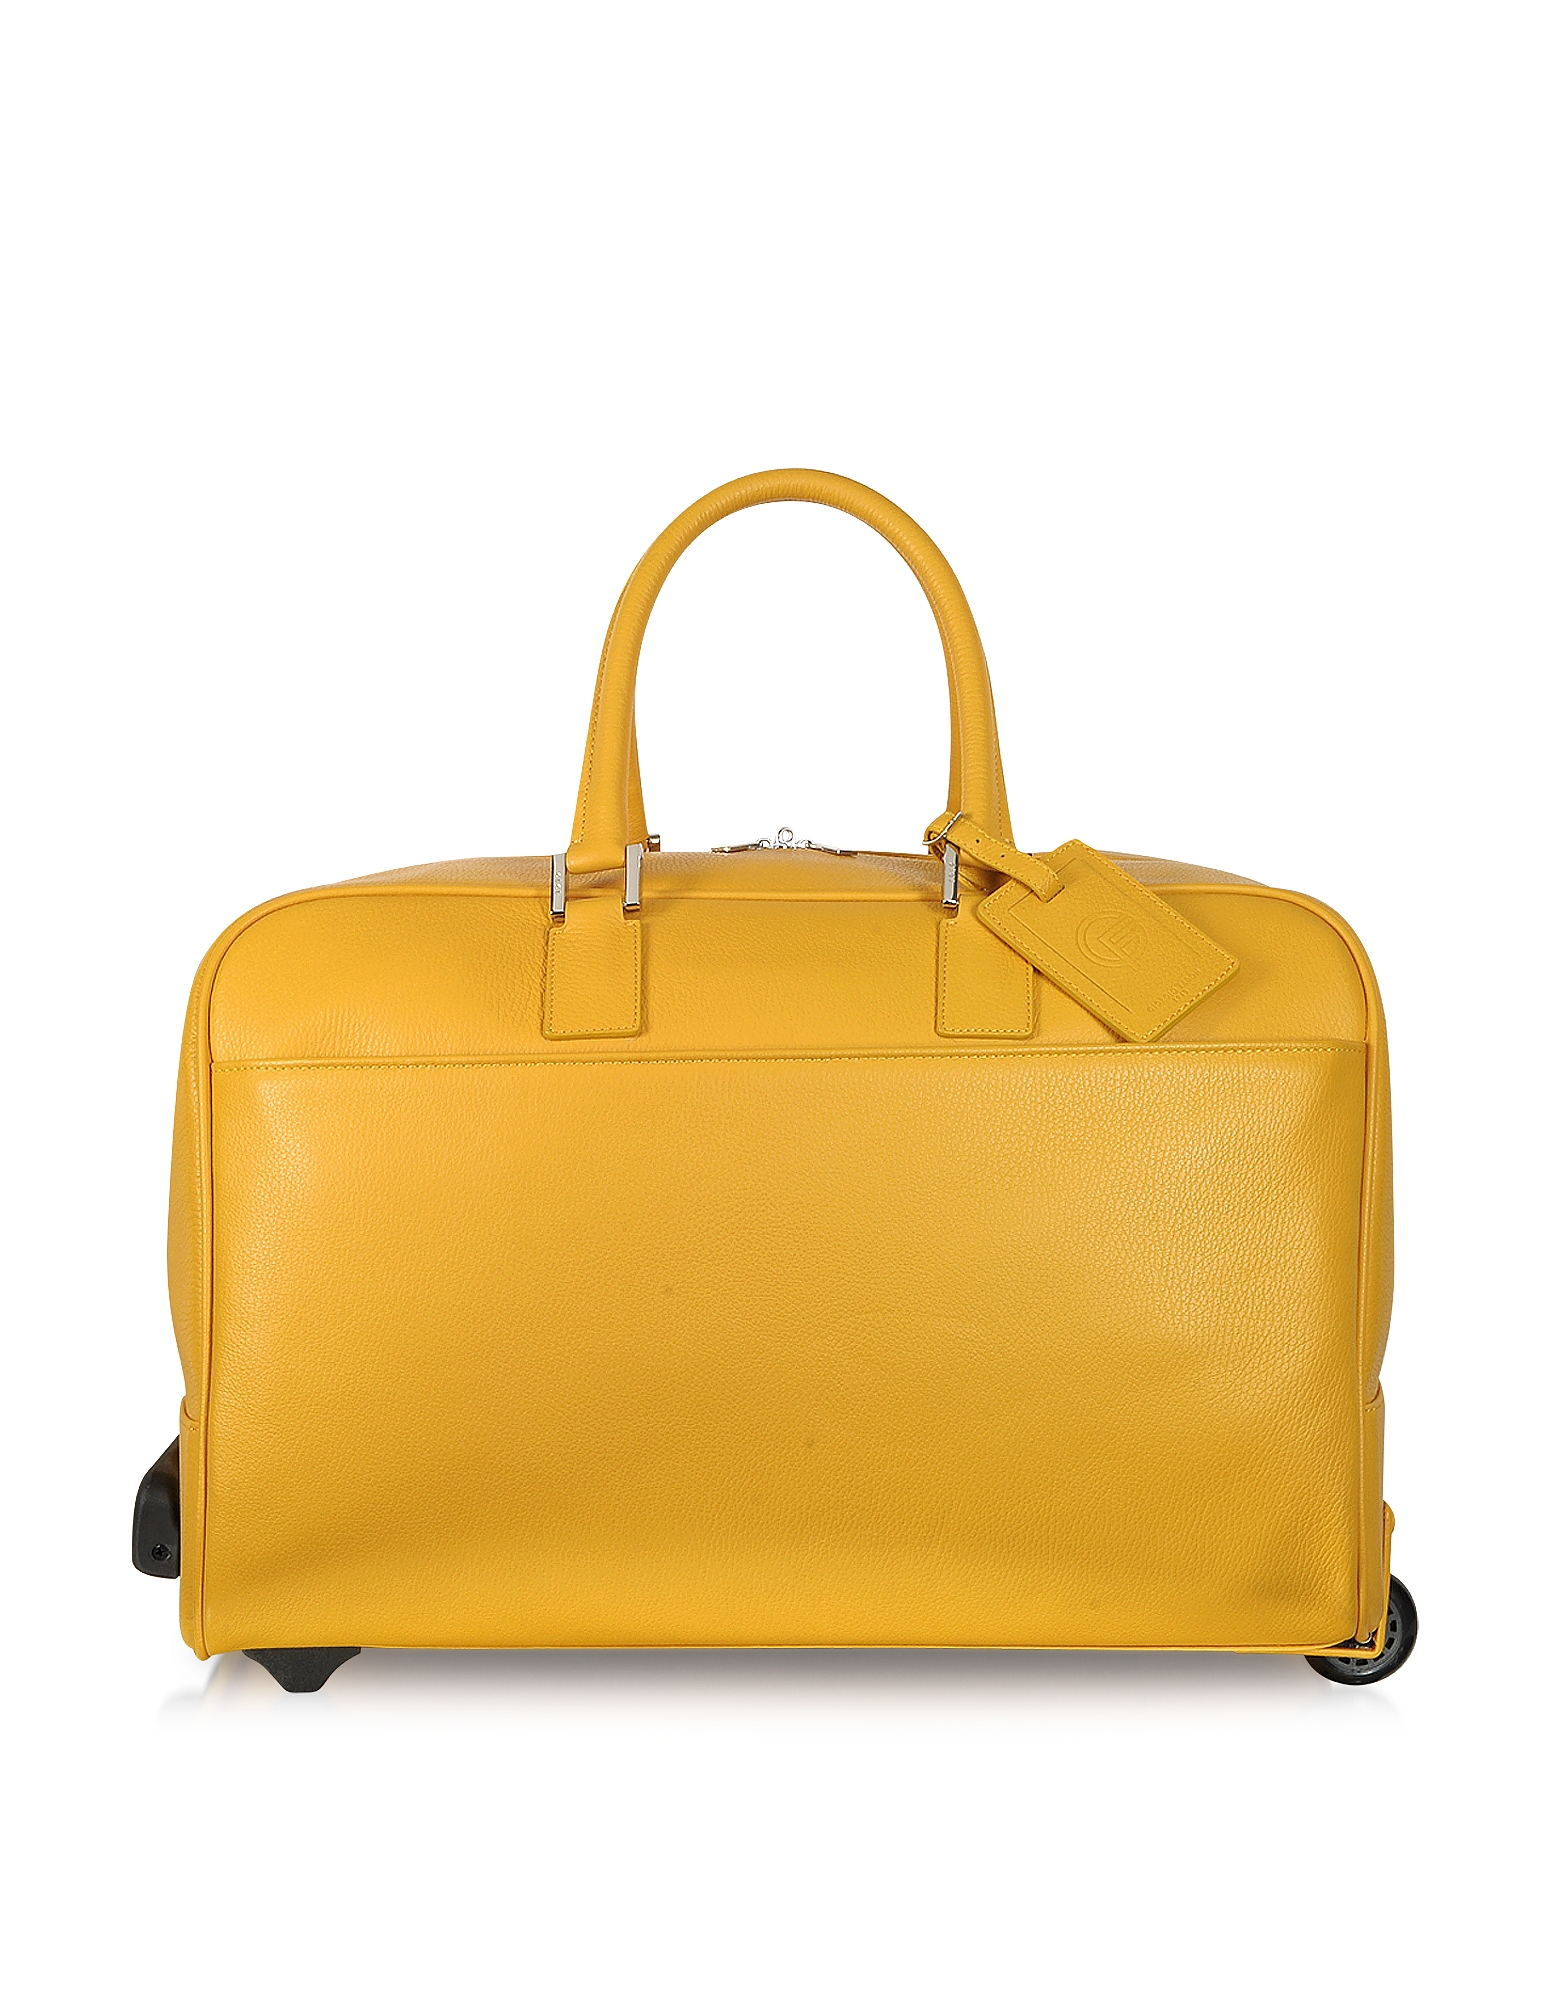 Giorgio Fedon 1919 Travel Bags, Travel Yellow Leather Rolling Duffle